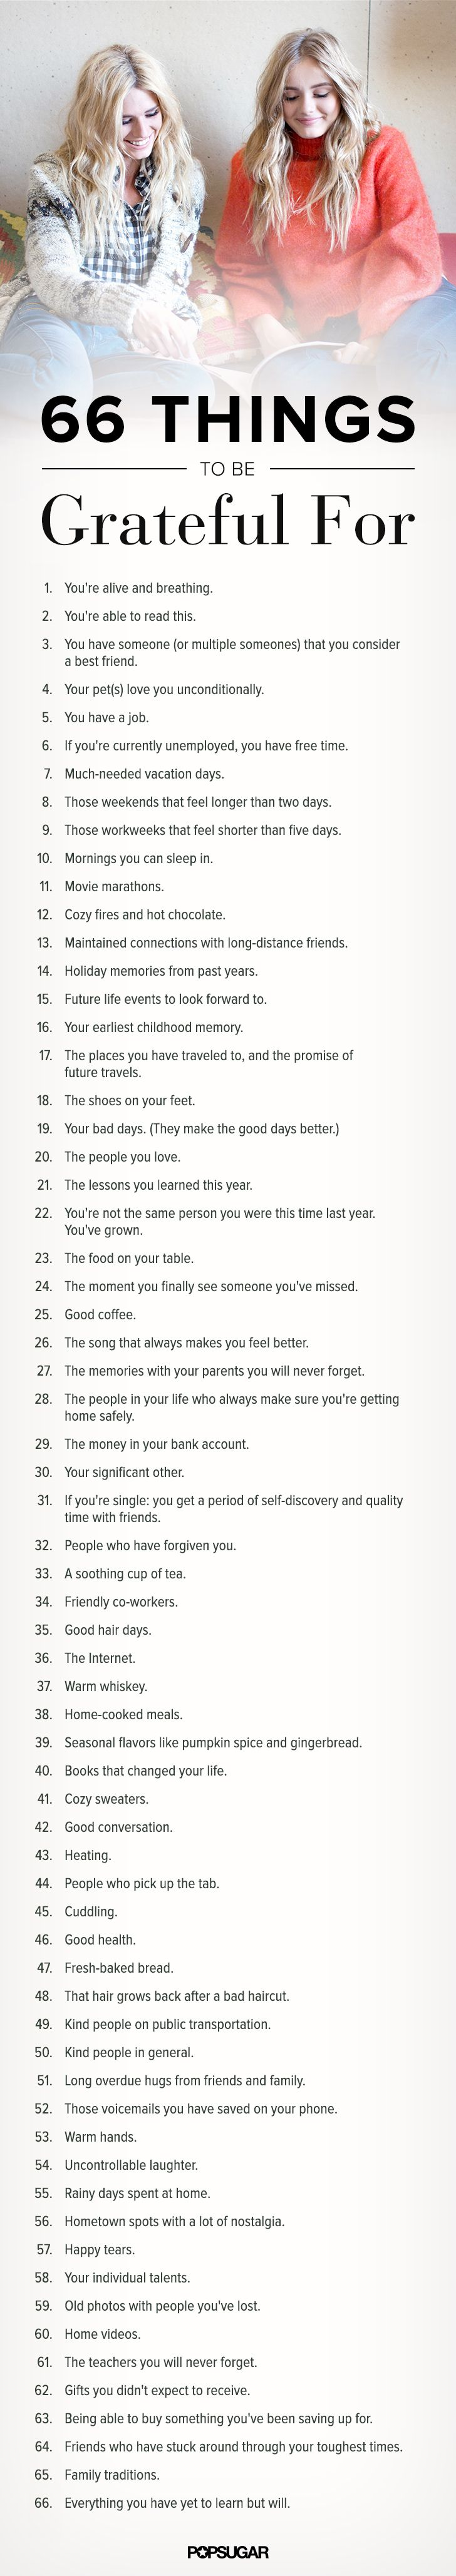 66 Things To Be Grateful For